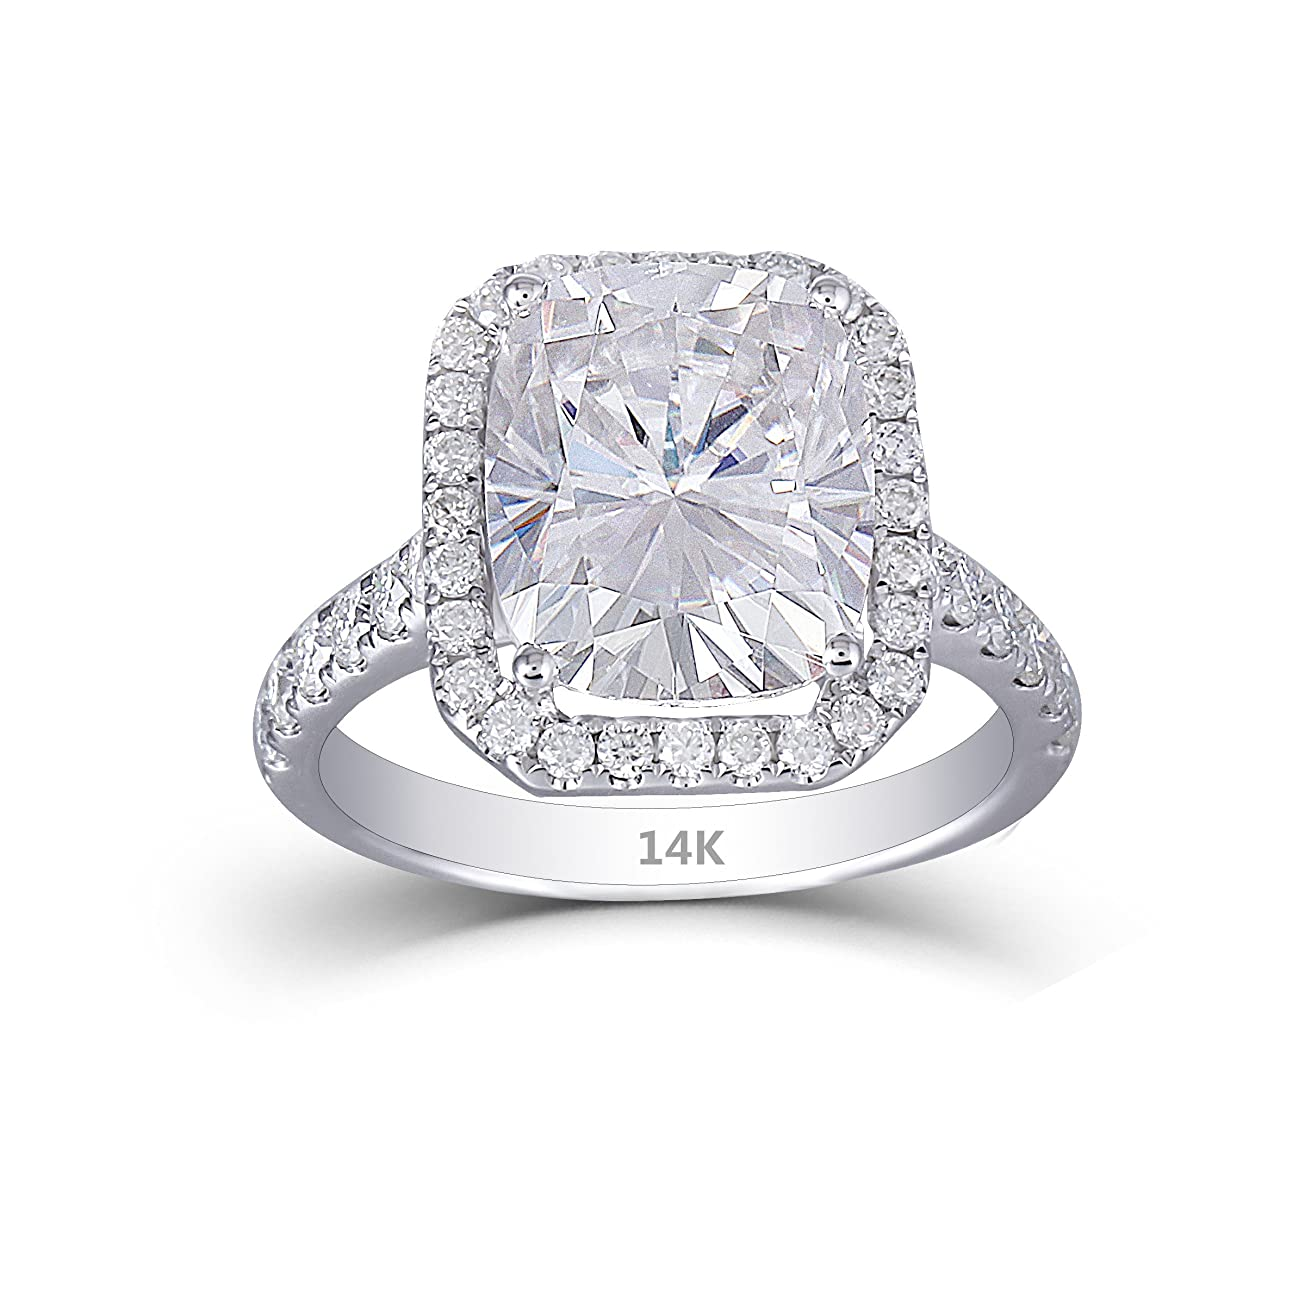 DOVEGGS Solid 14K White Gold Center 5ct 9X11mm H Color Cushion Cut Moissanite Halo Engagement Ring